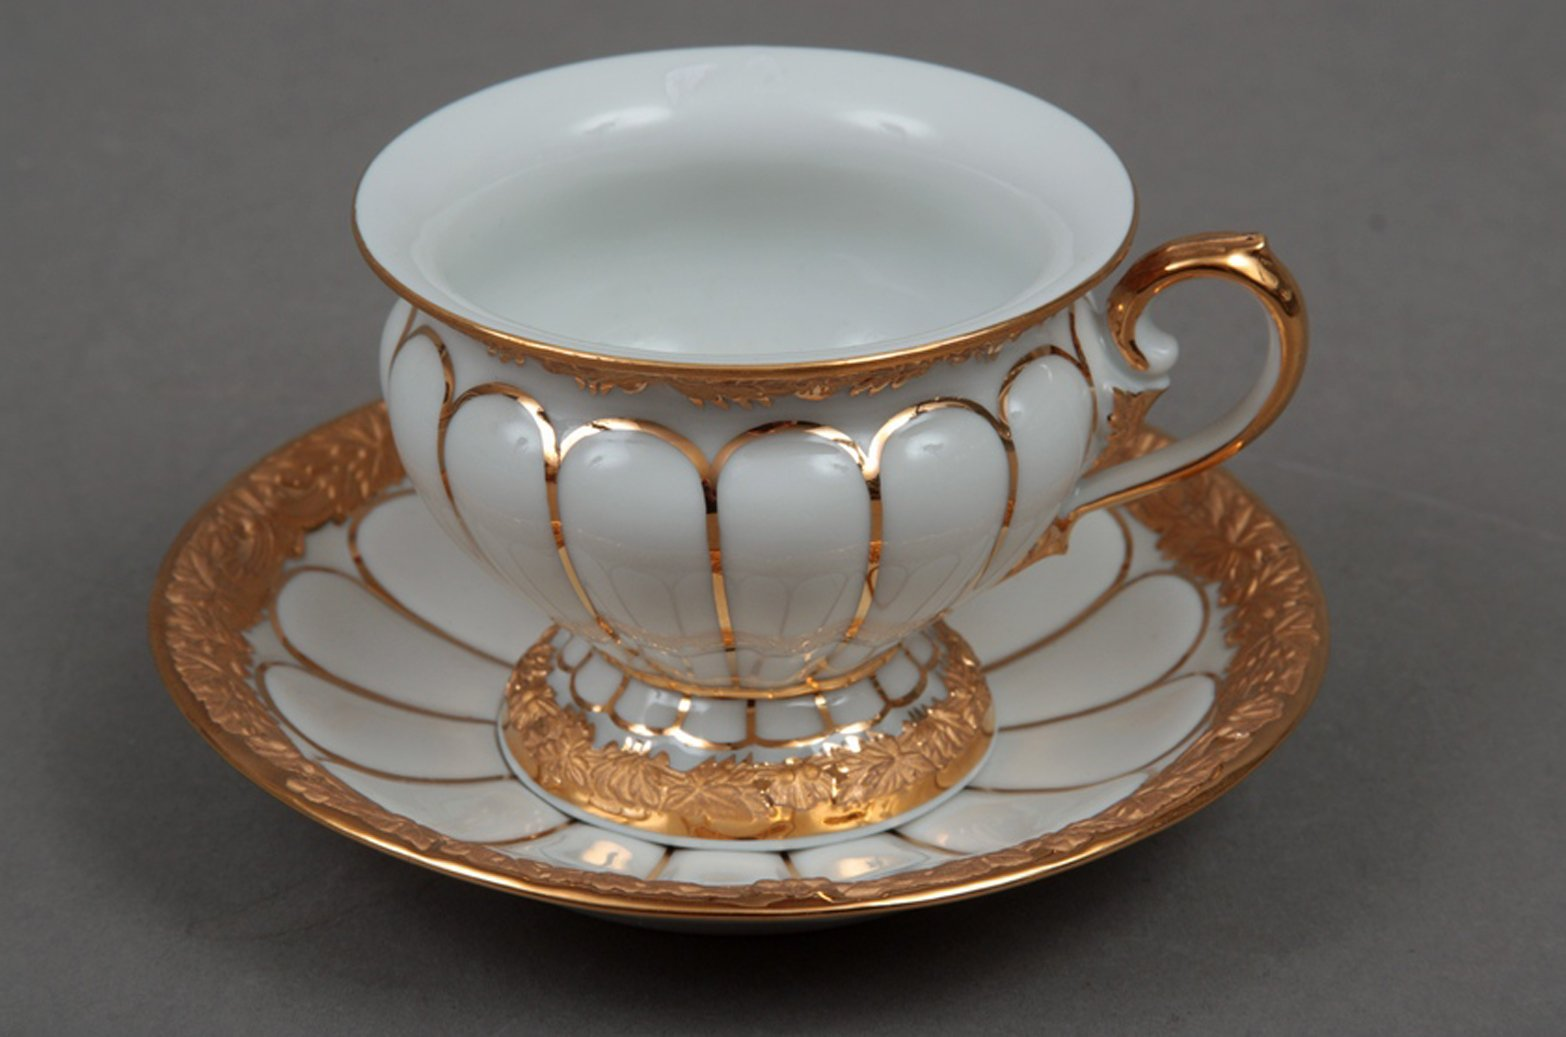 3 piece sofa set for sale bed new york city meissen porcelain cup and saucer with golden pattern ...